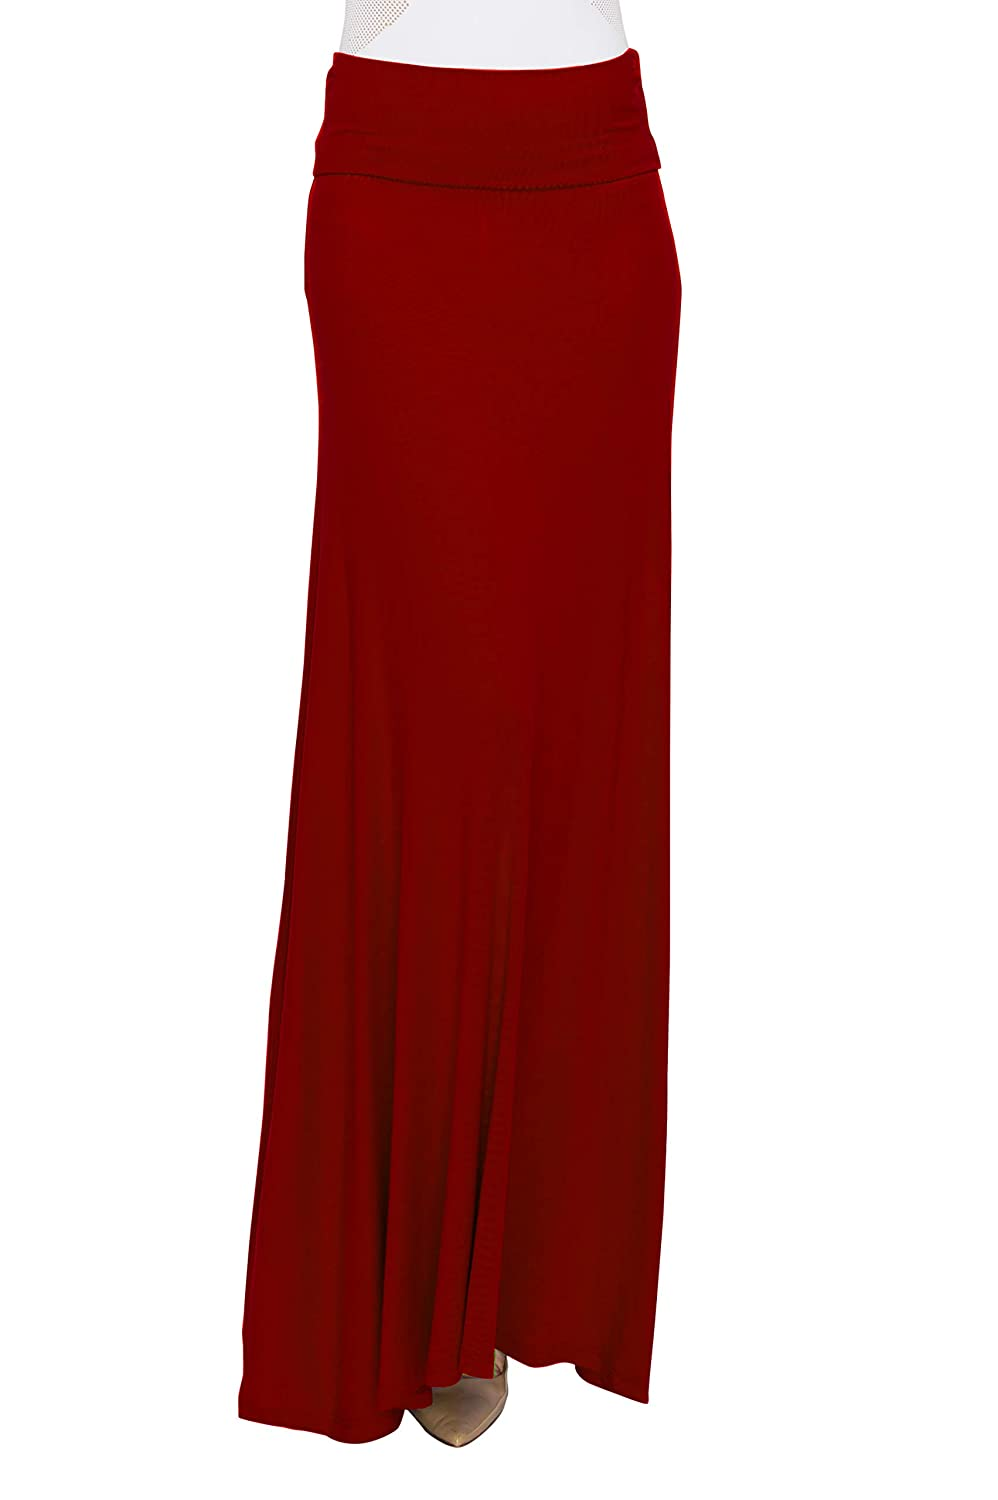 Made in USA MBJ Womens Lightweight Floor Length Maxi Skirt